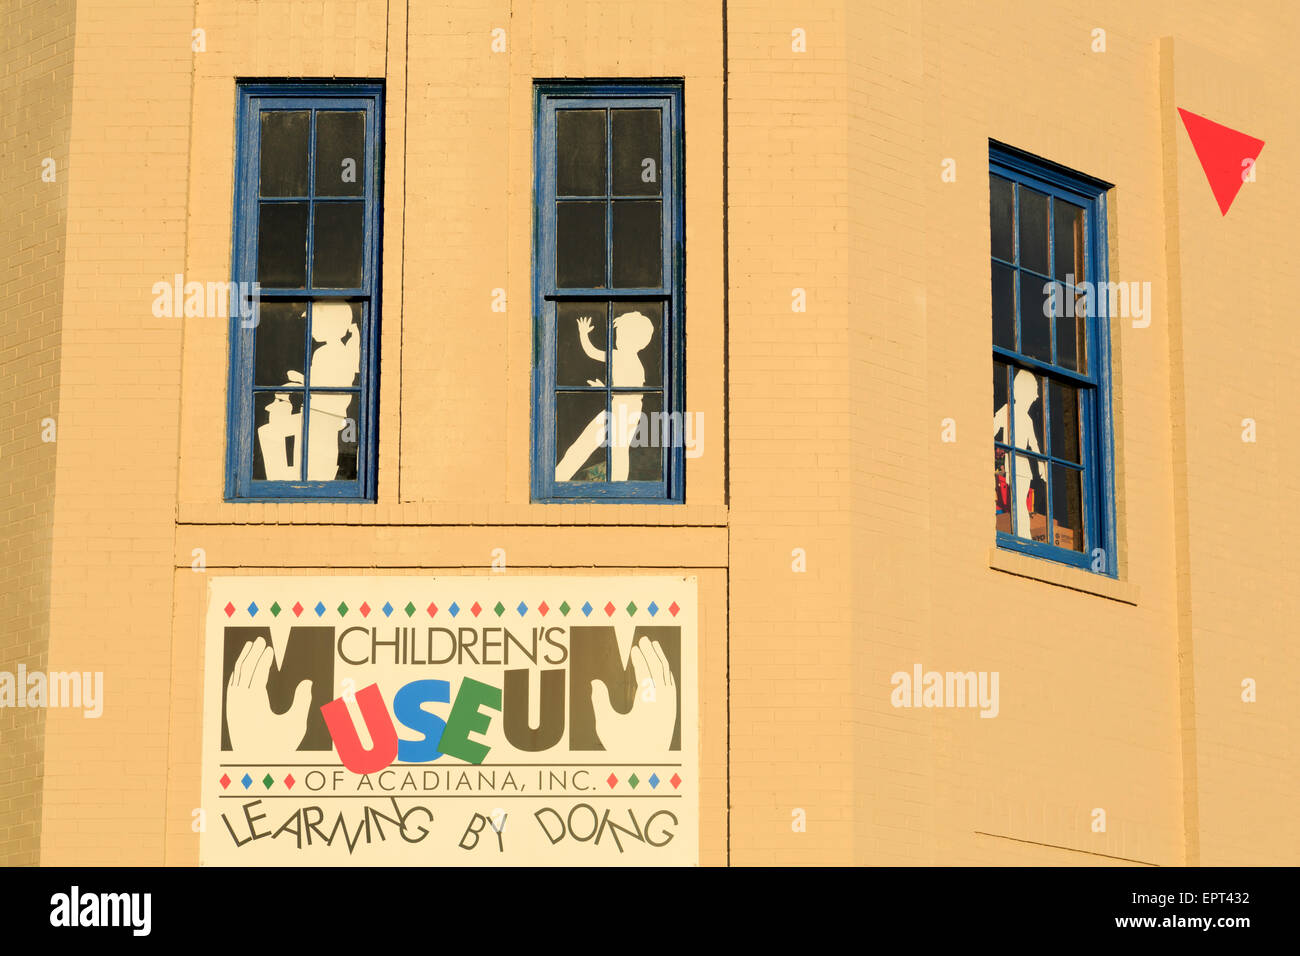 Children's Museum, Lafayette, Louisiana, USA - Stock Image